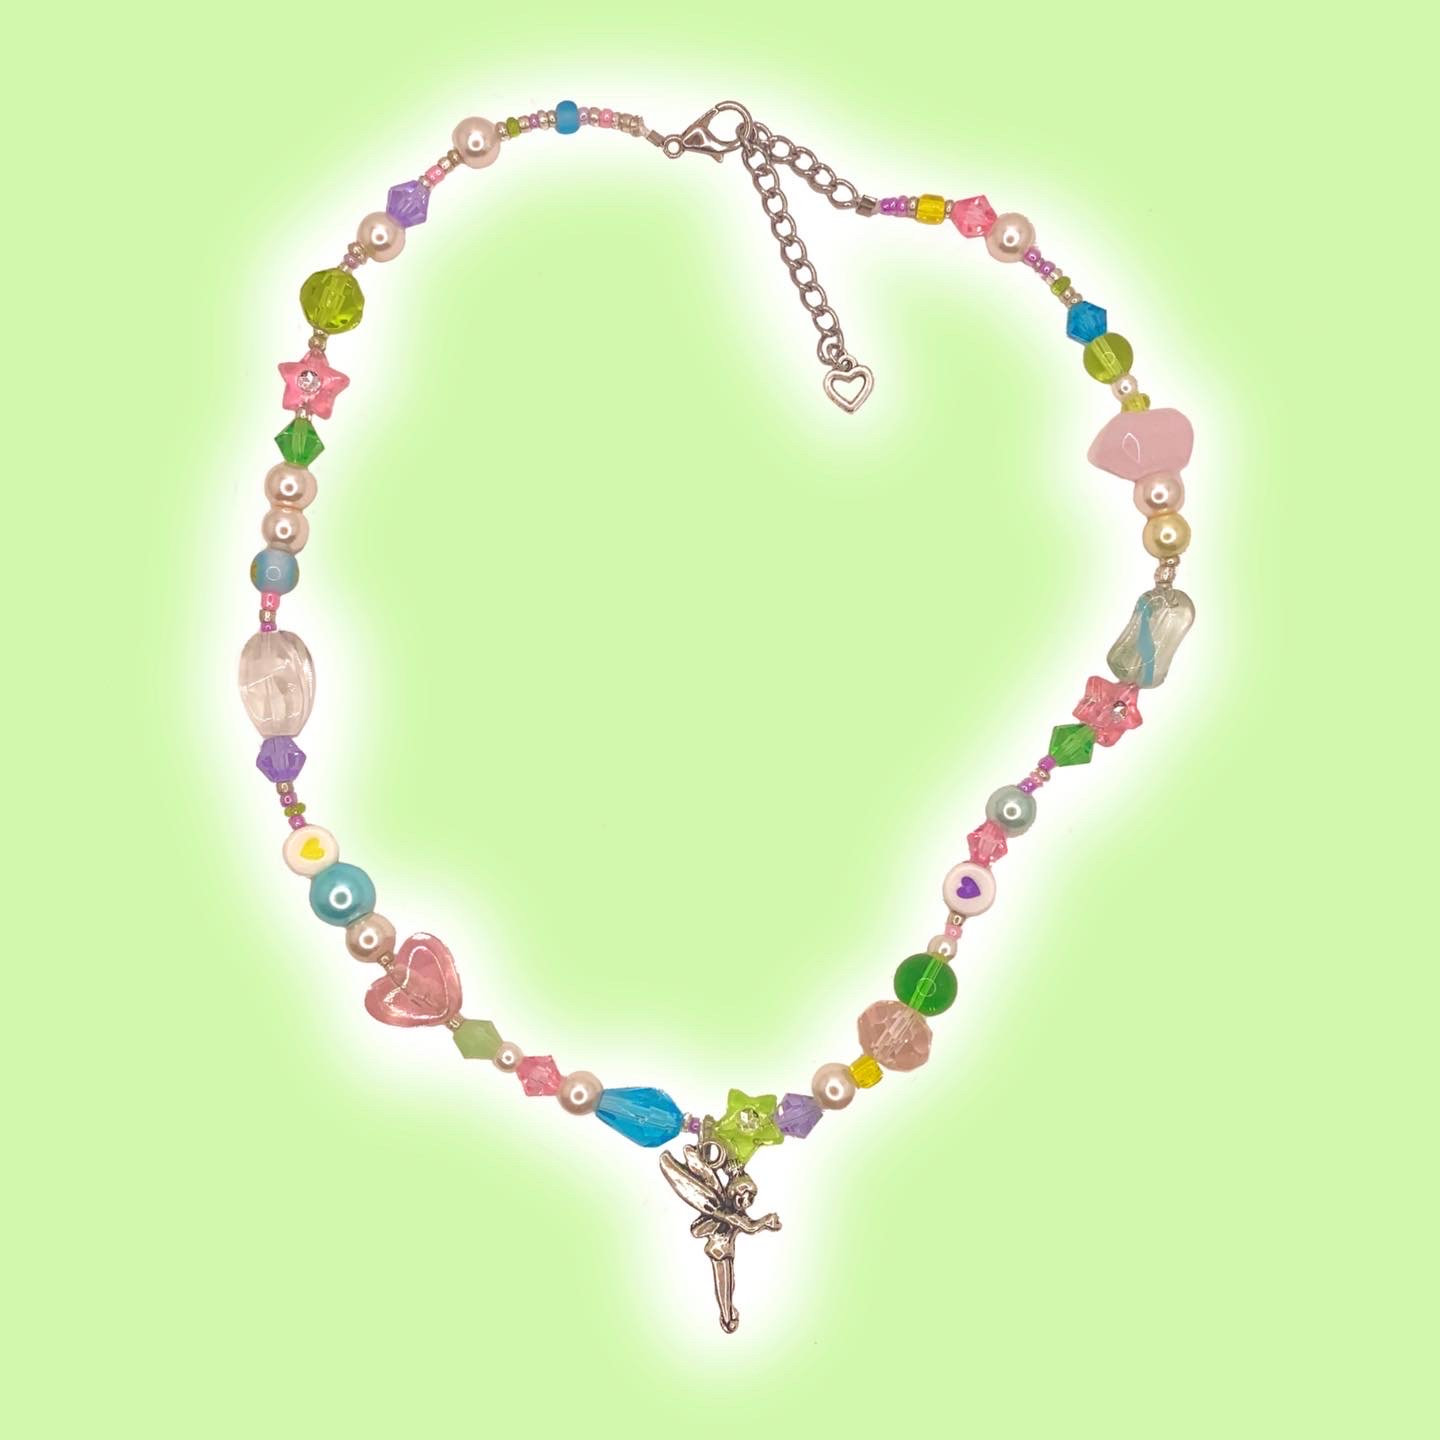 iridescent fairy wings charm chain necklace aesthetic jewelry fairycore accessories silver choker layered necklaces for teenage girls